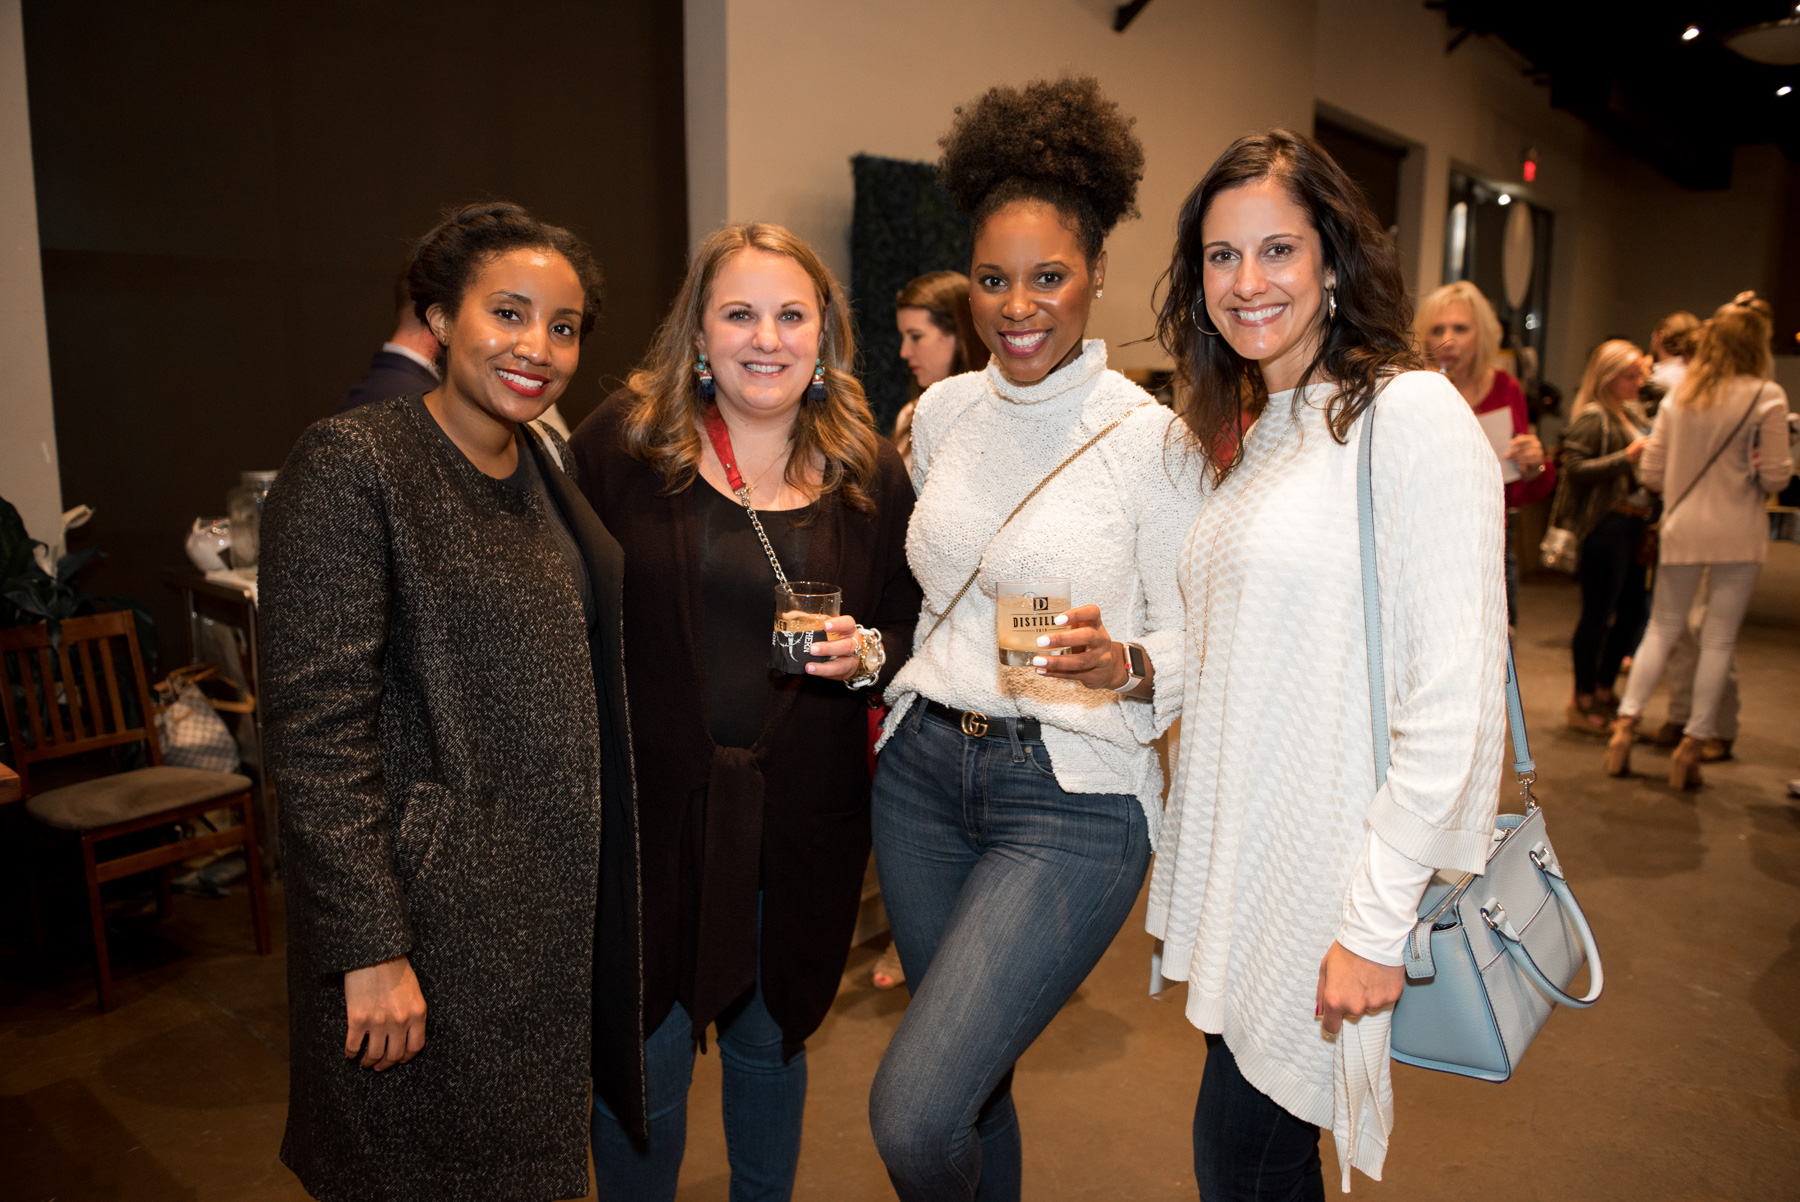 Scenes From D Magazine's 2019 Distilled